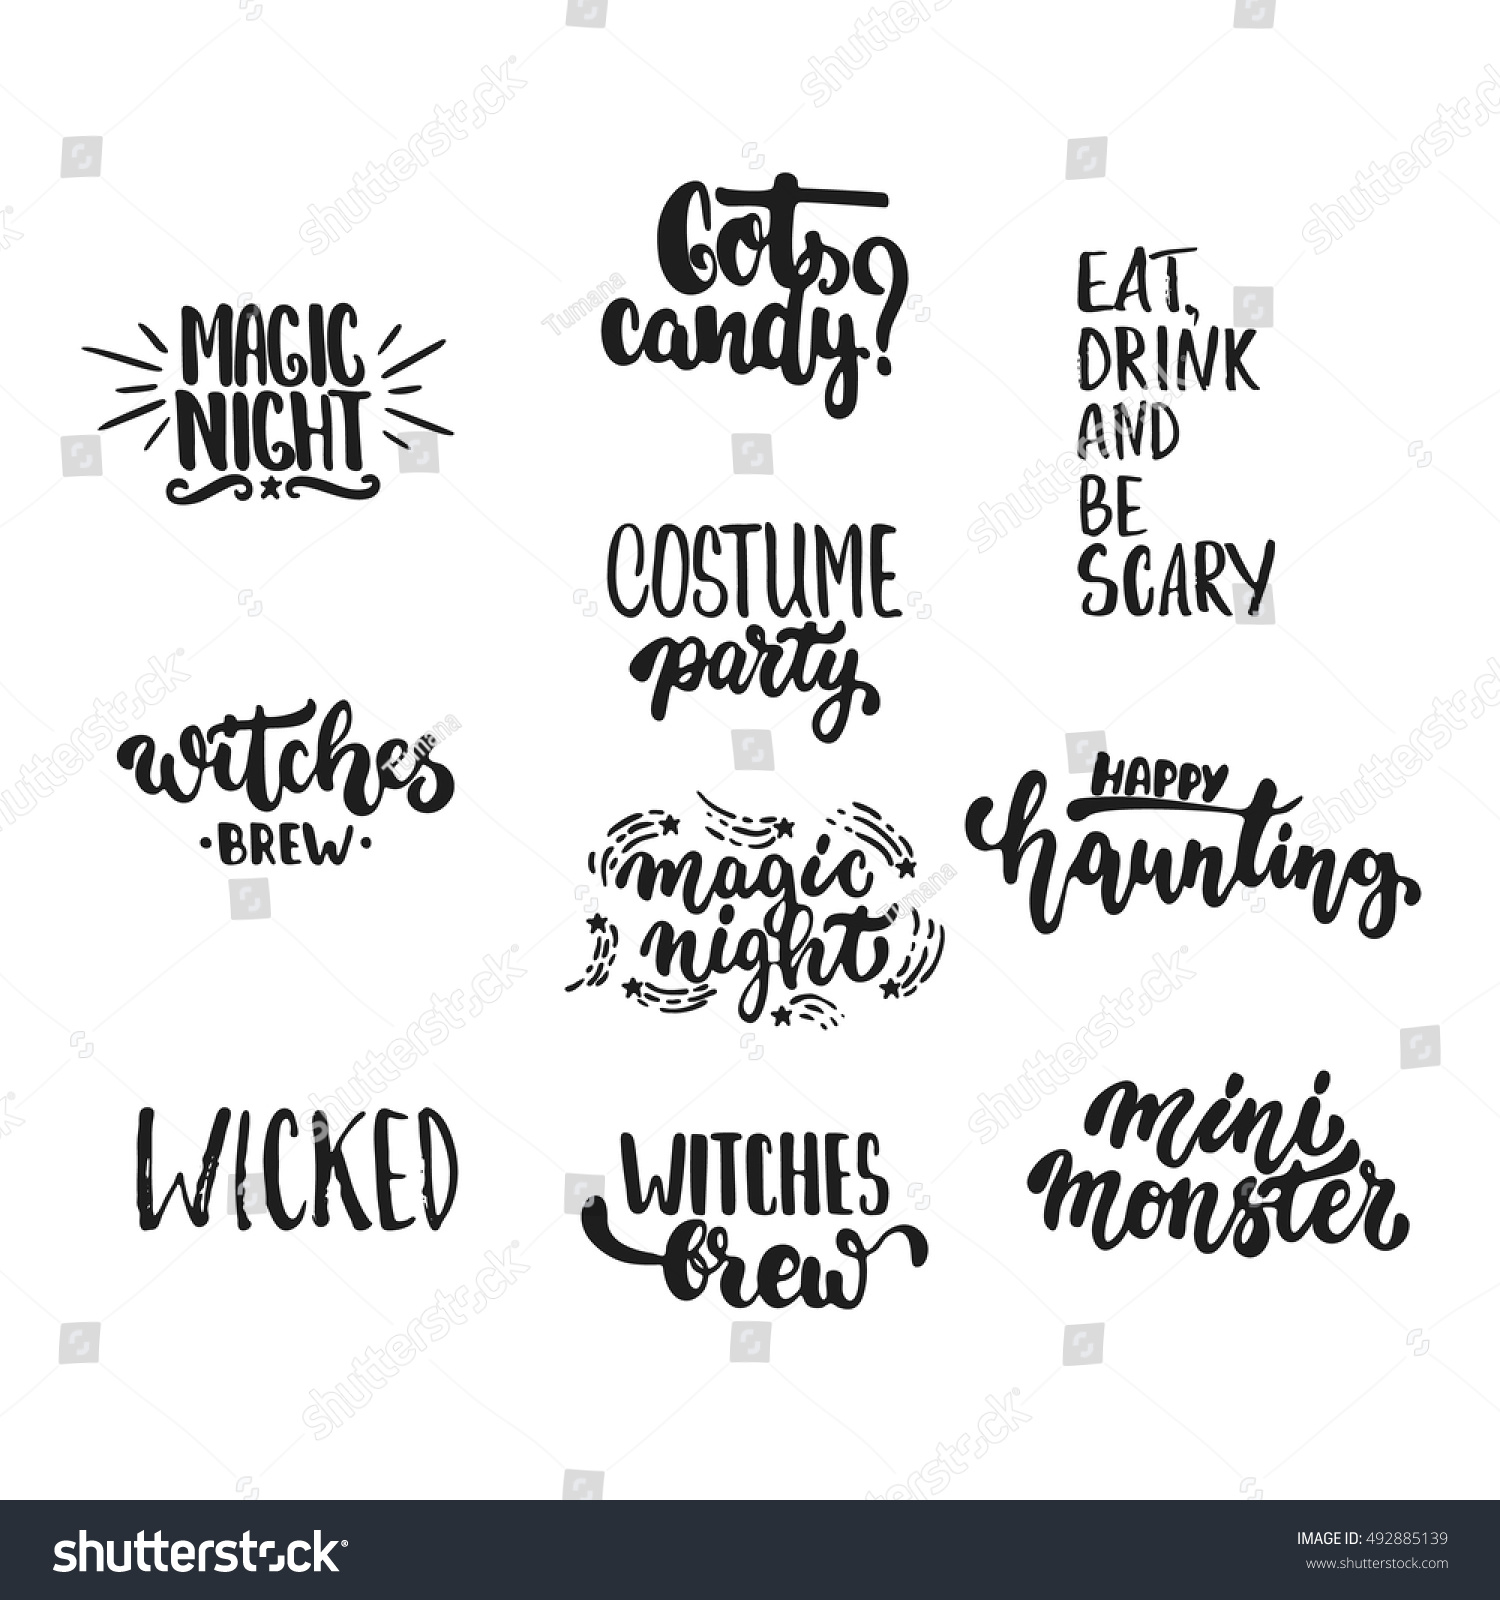 Halloween Phrases.Halloween Party Hand Drawn Lettering Phrases Stock Vector Royalty Free 492885139